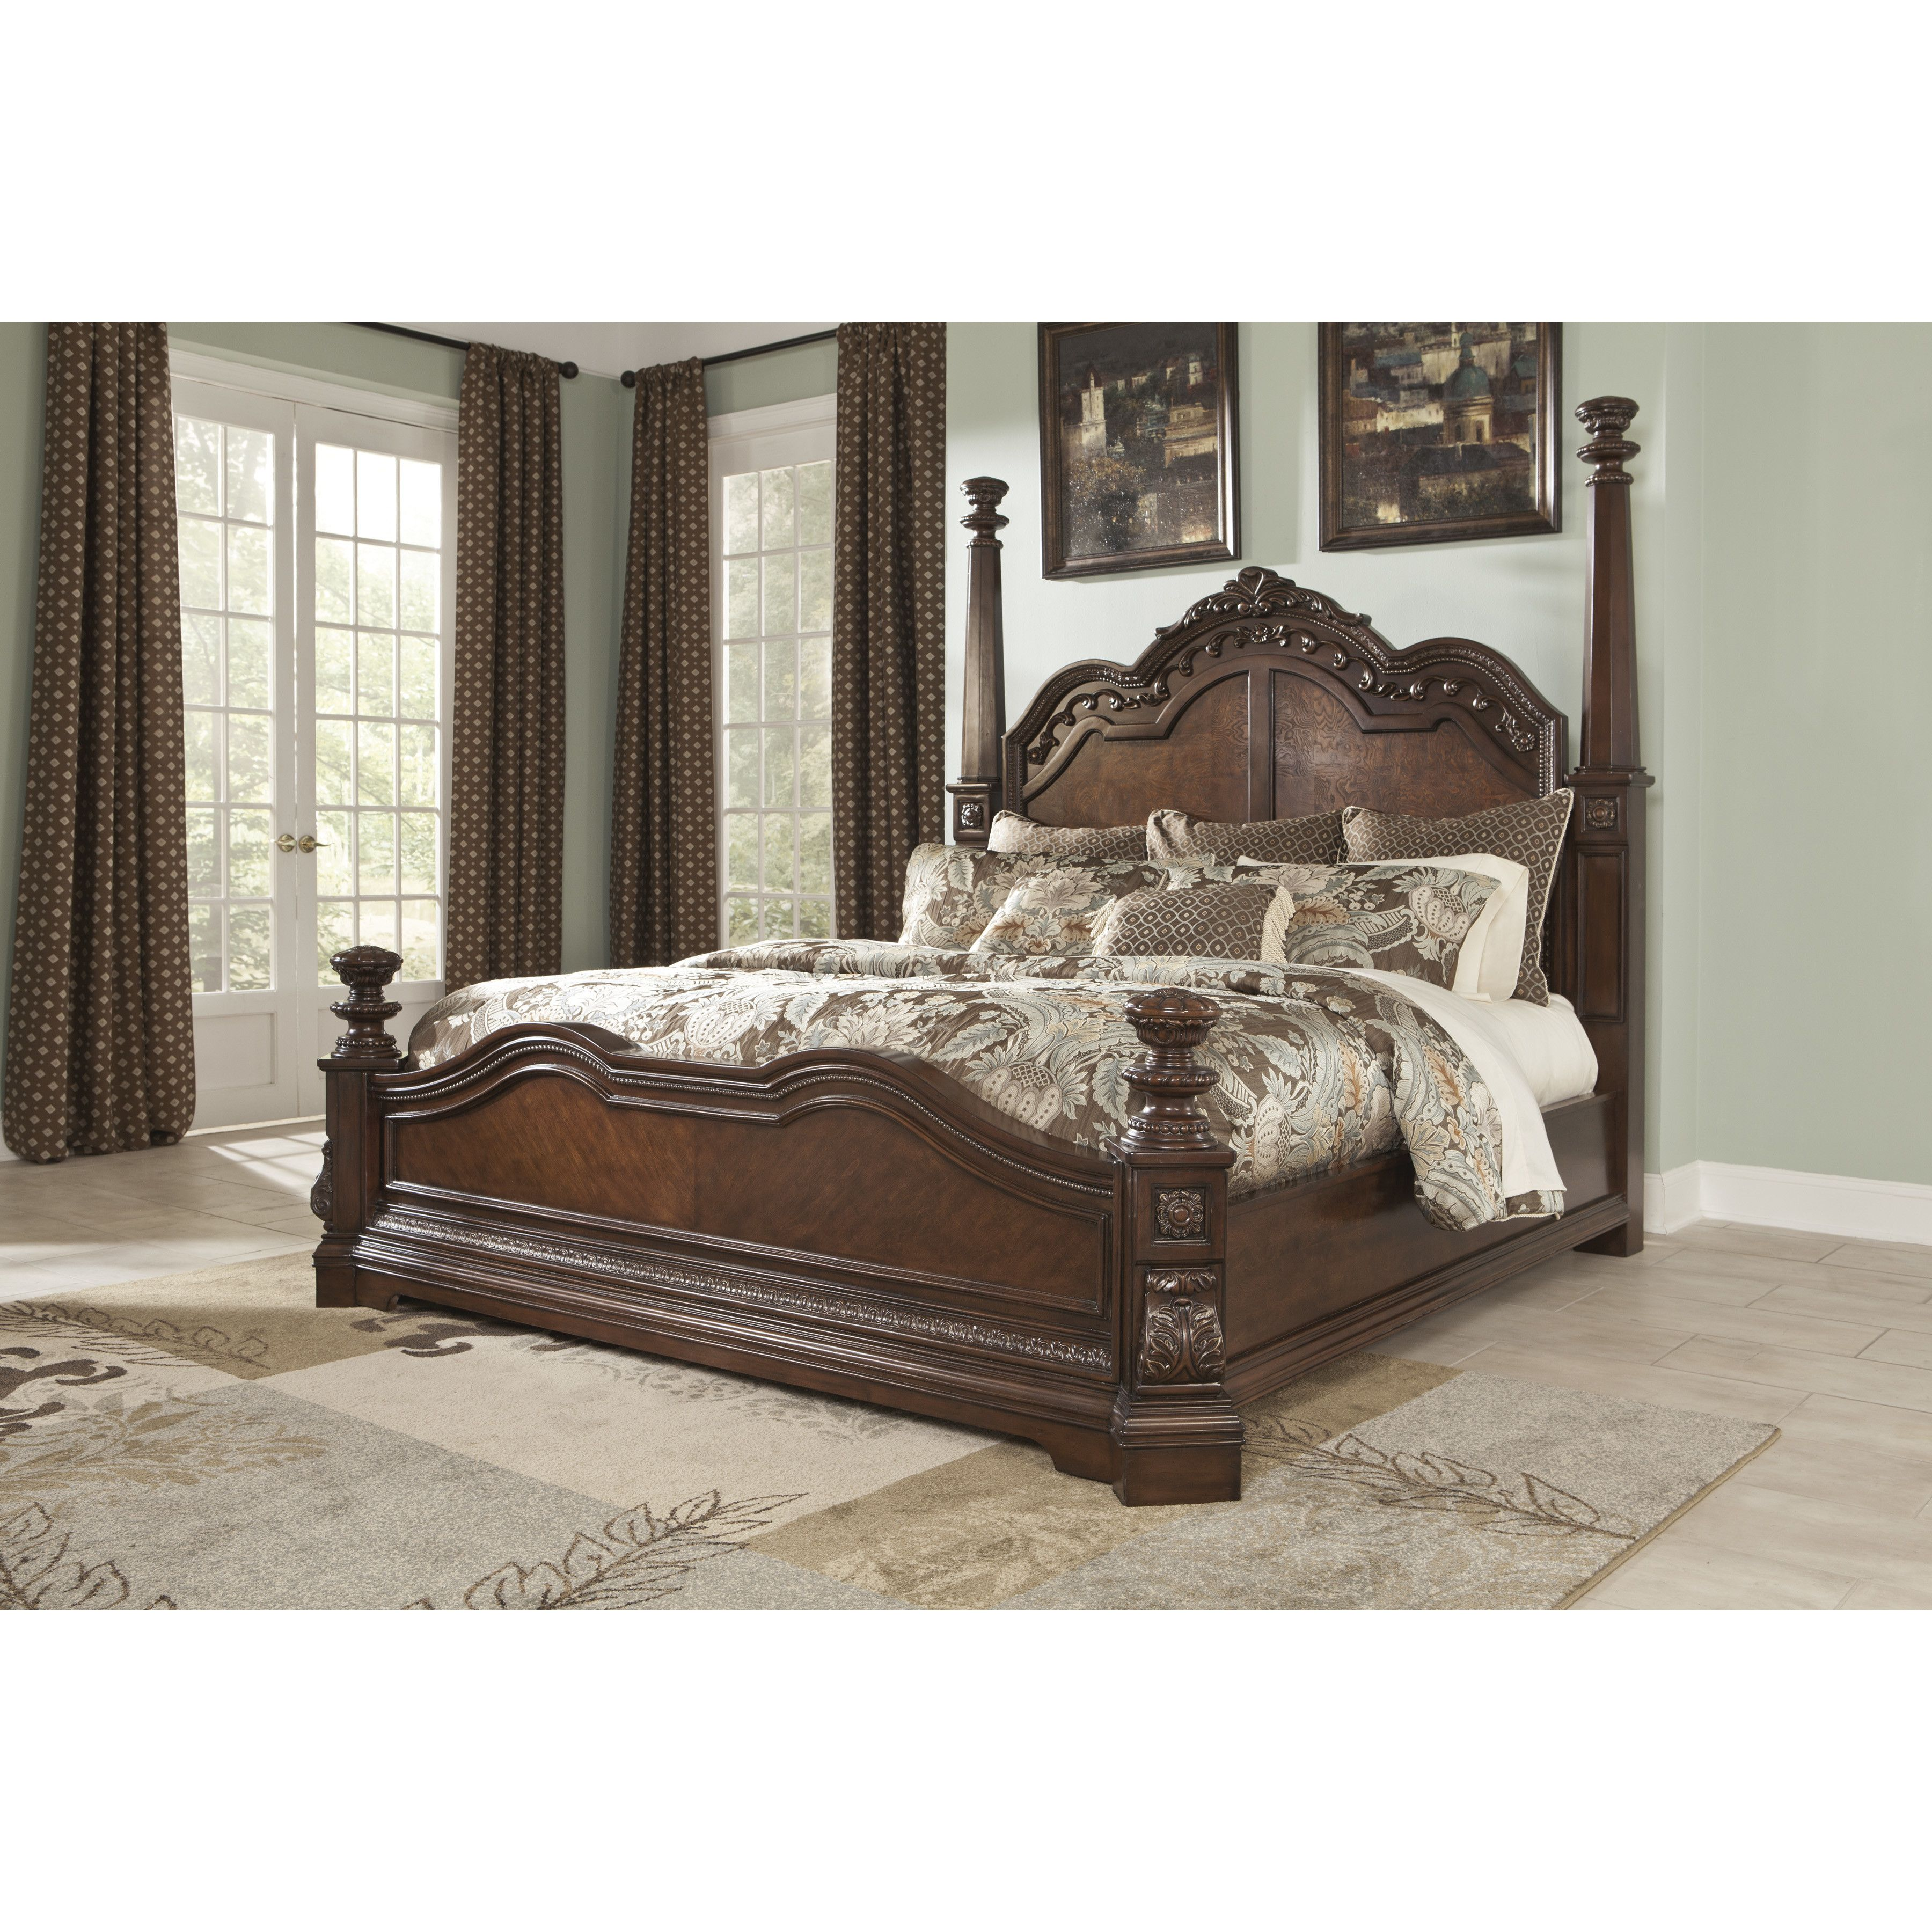 North Shore California King Panel Bed Bedroom furniture